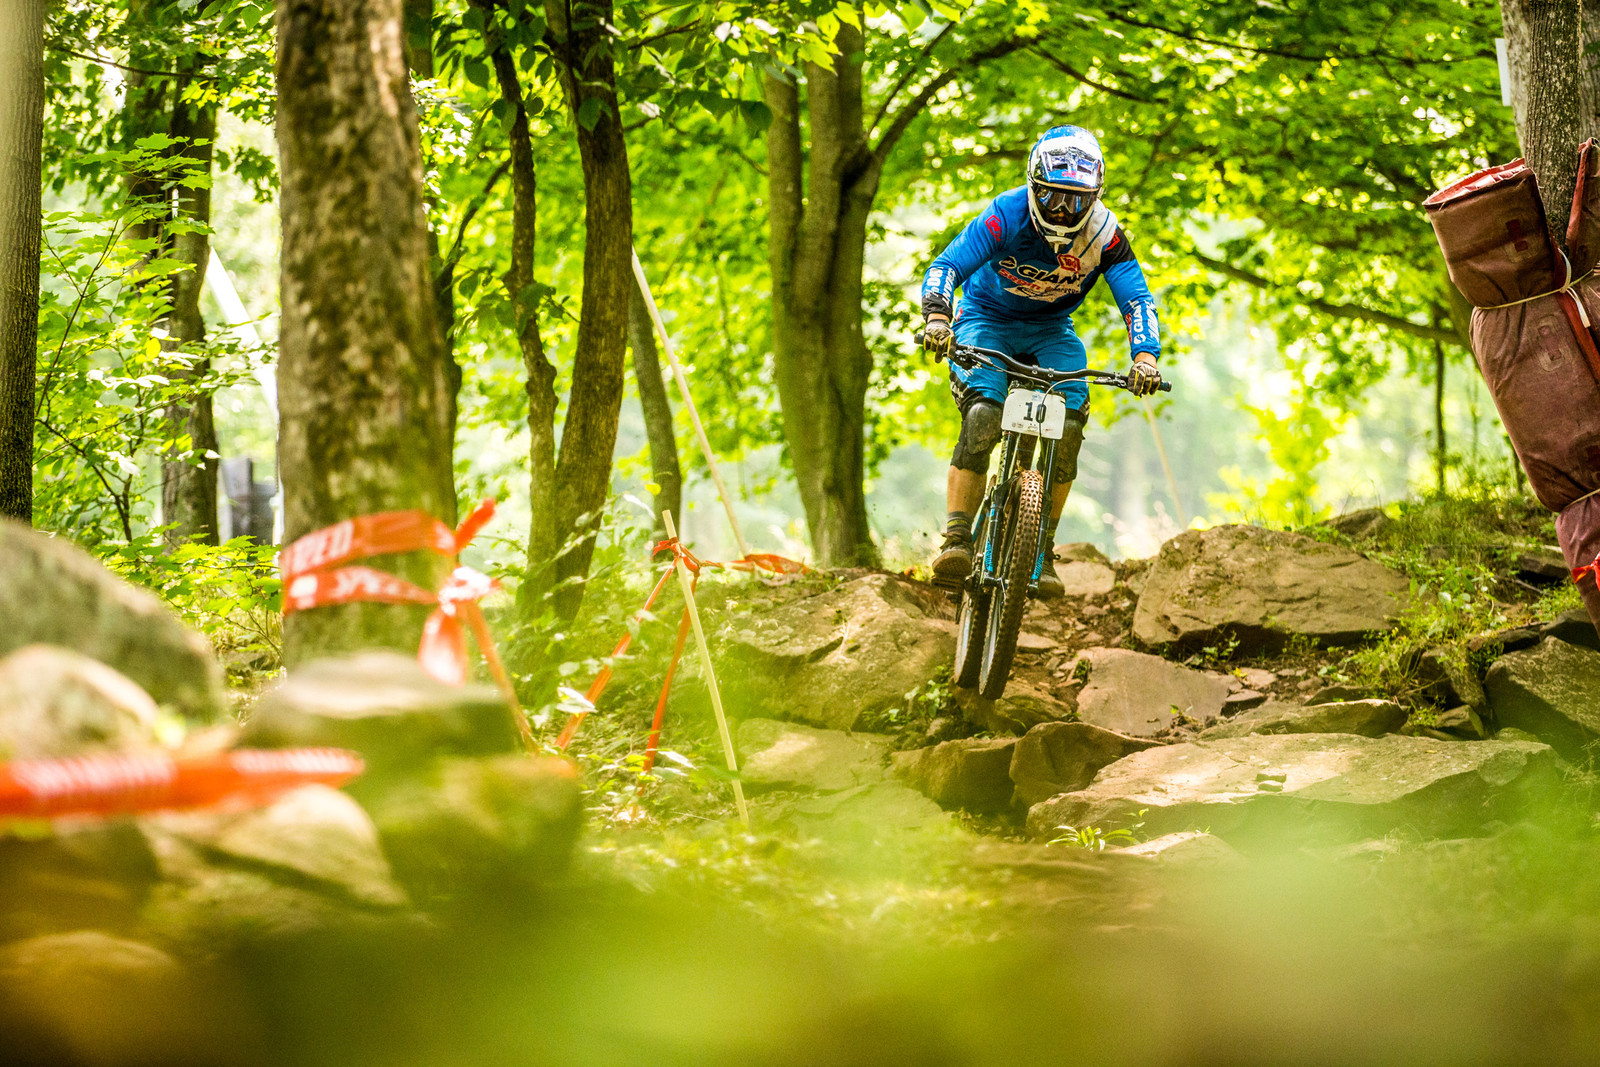 Charles Frydendal - RACE DAY GALLERY - 2017 Pro GRT, Windham, NY - Mountain Biking Pictures - Vital MTB